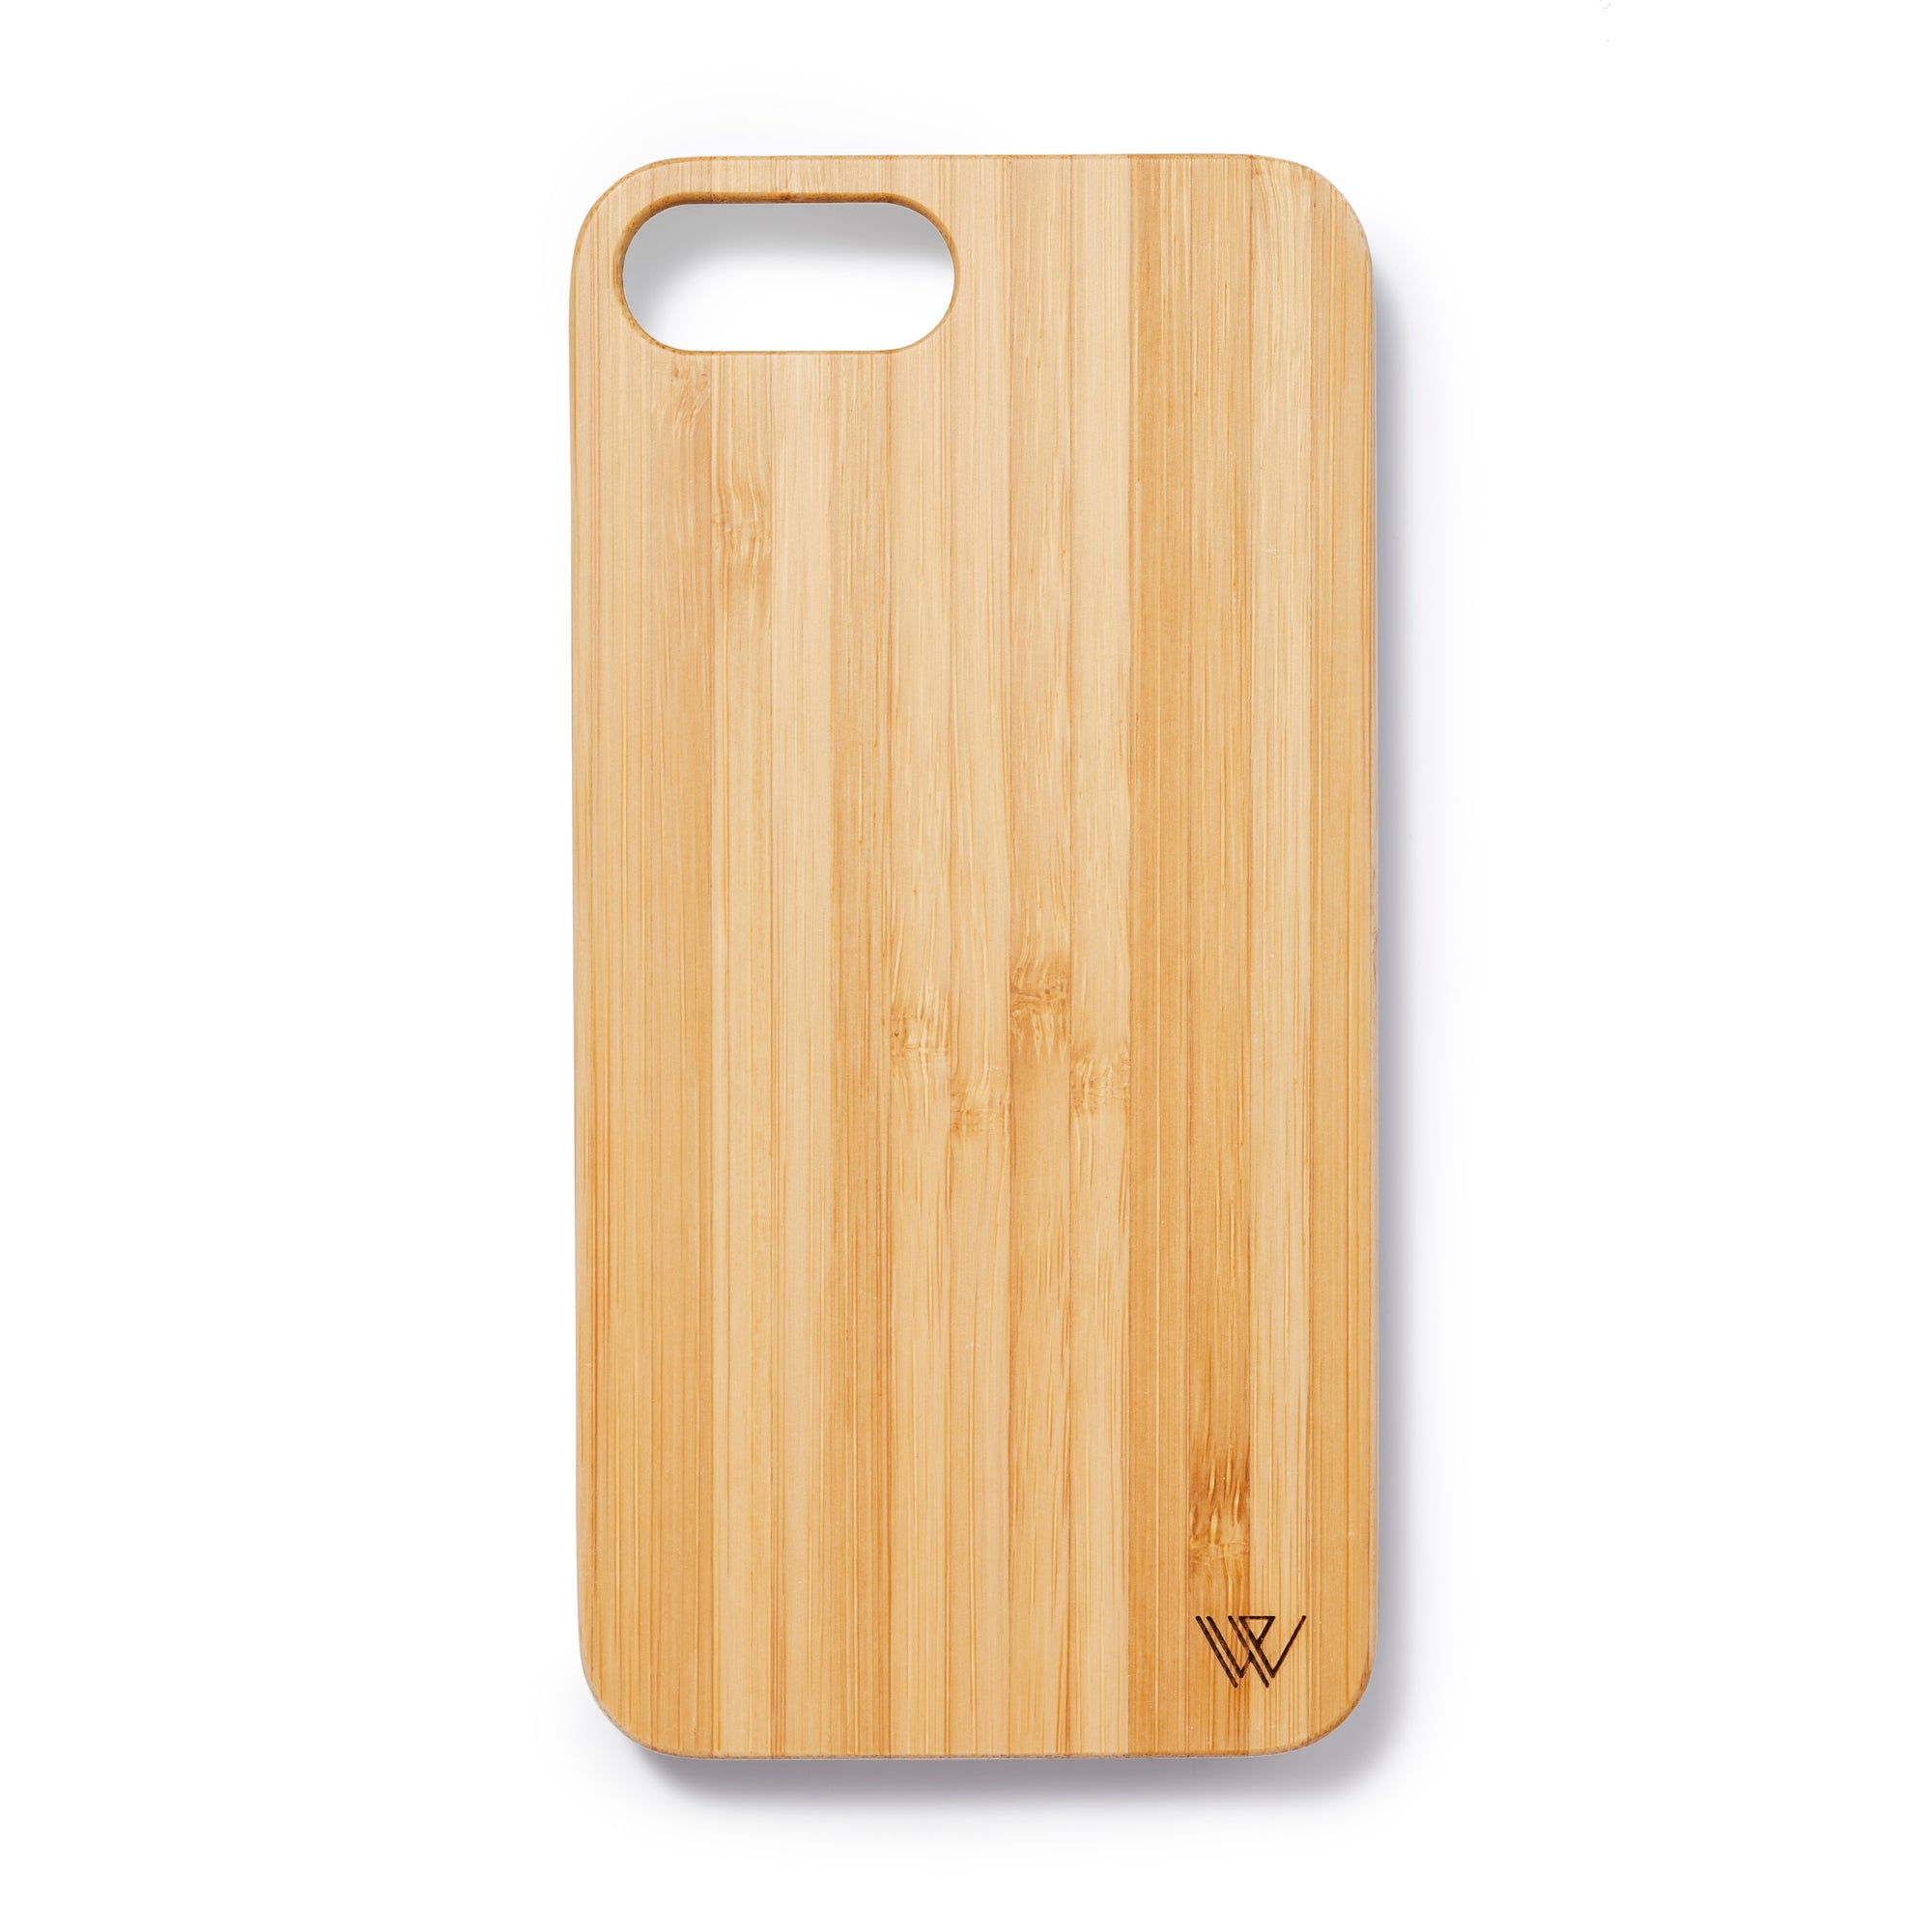 Wooden Iphone 6,7 and 8 plus back case bamboo - Woodstylz